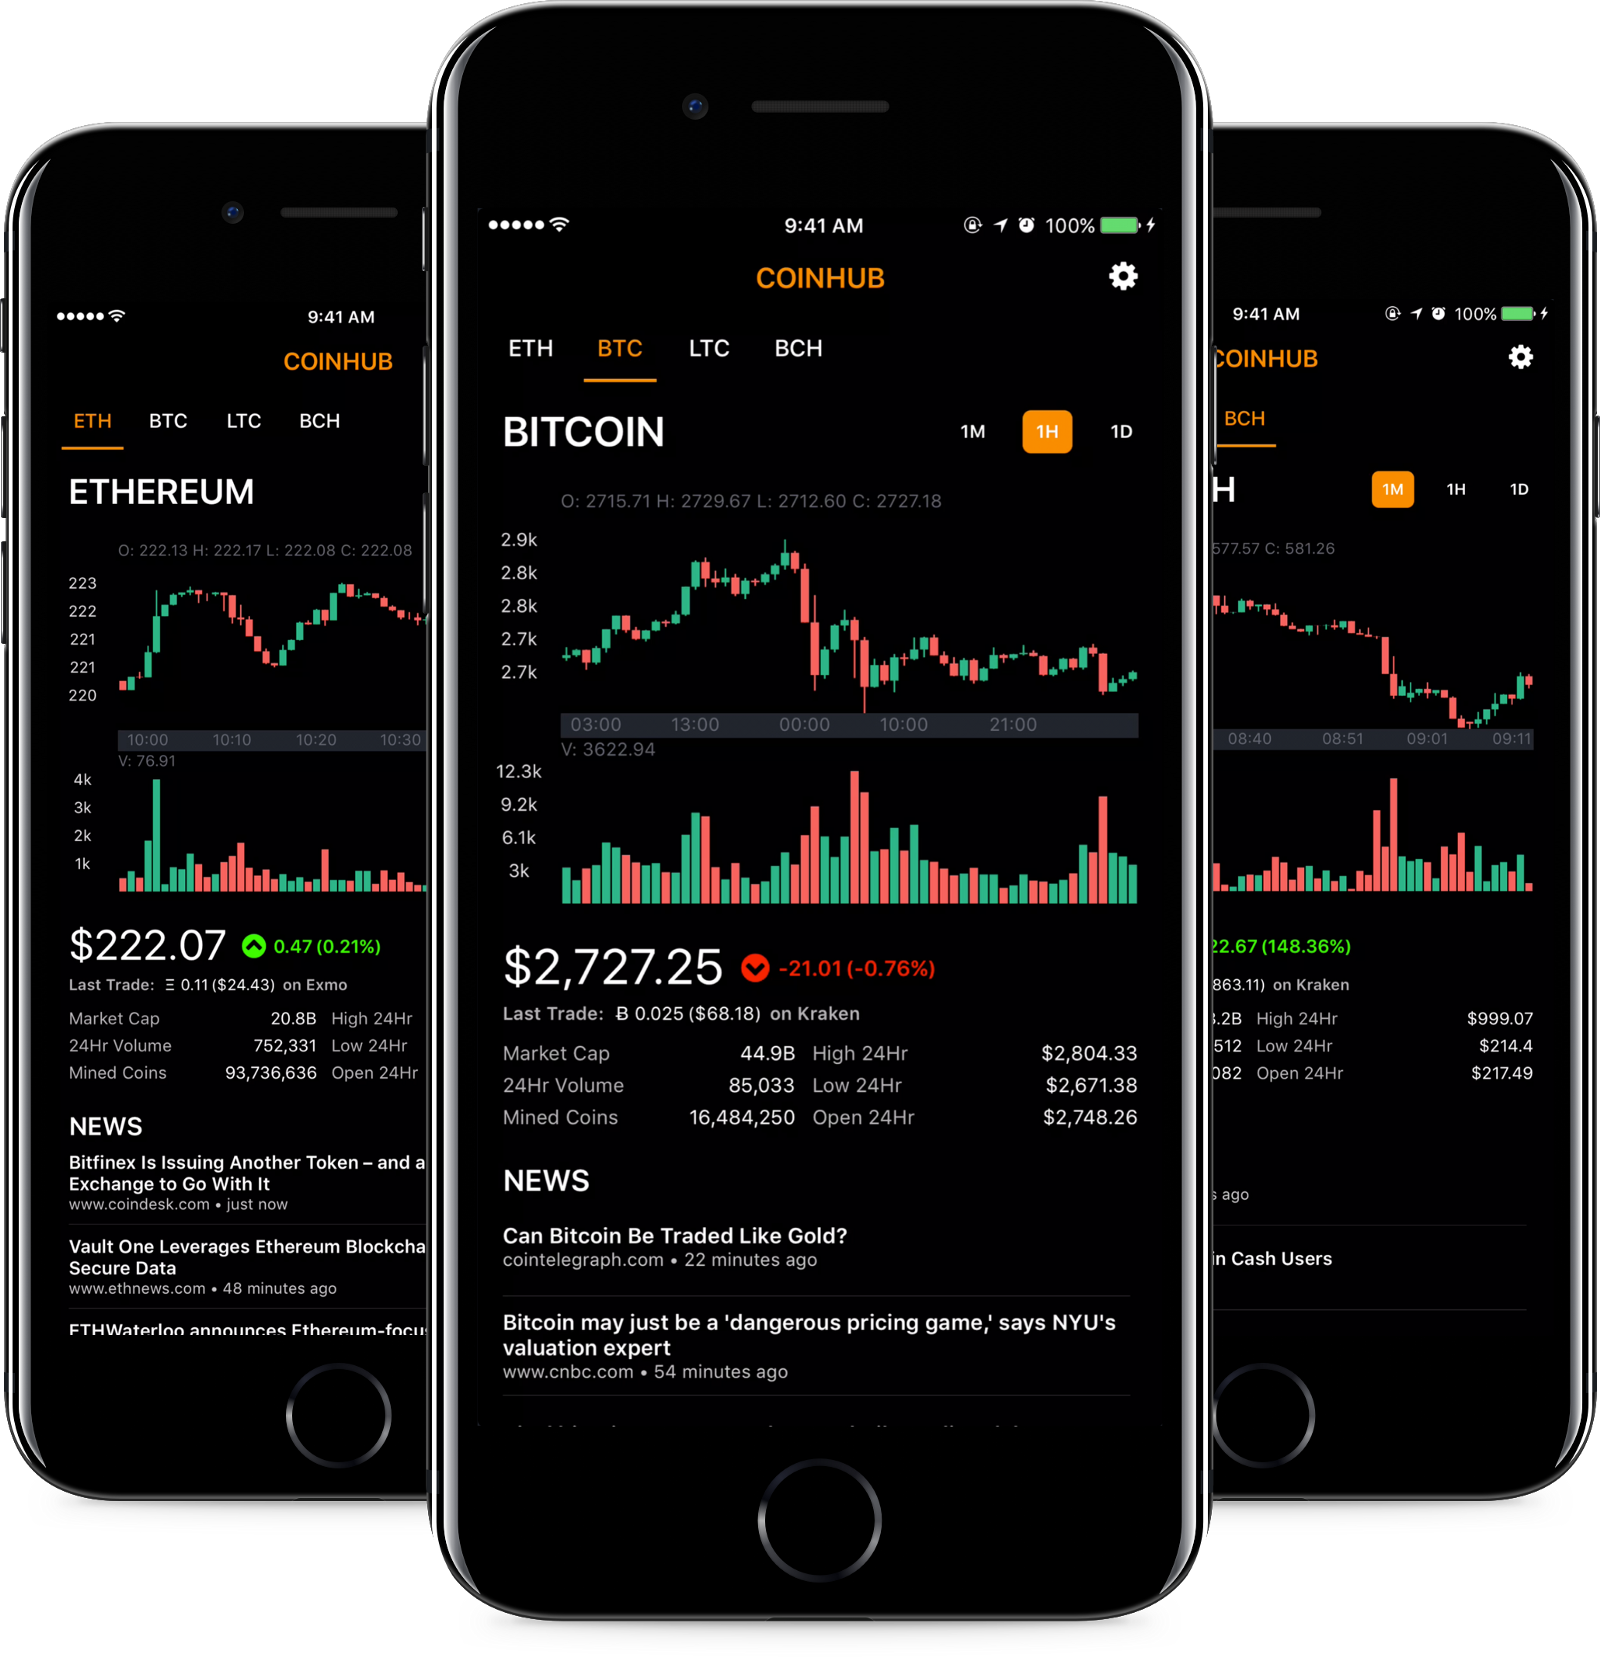 Day trading cryptocurrency app